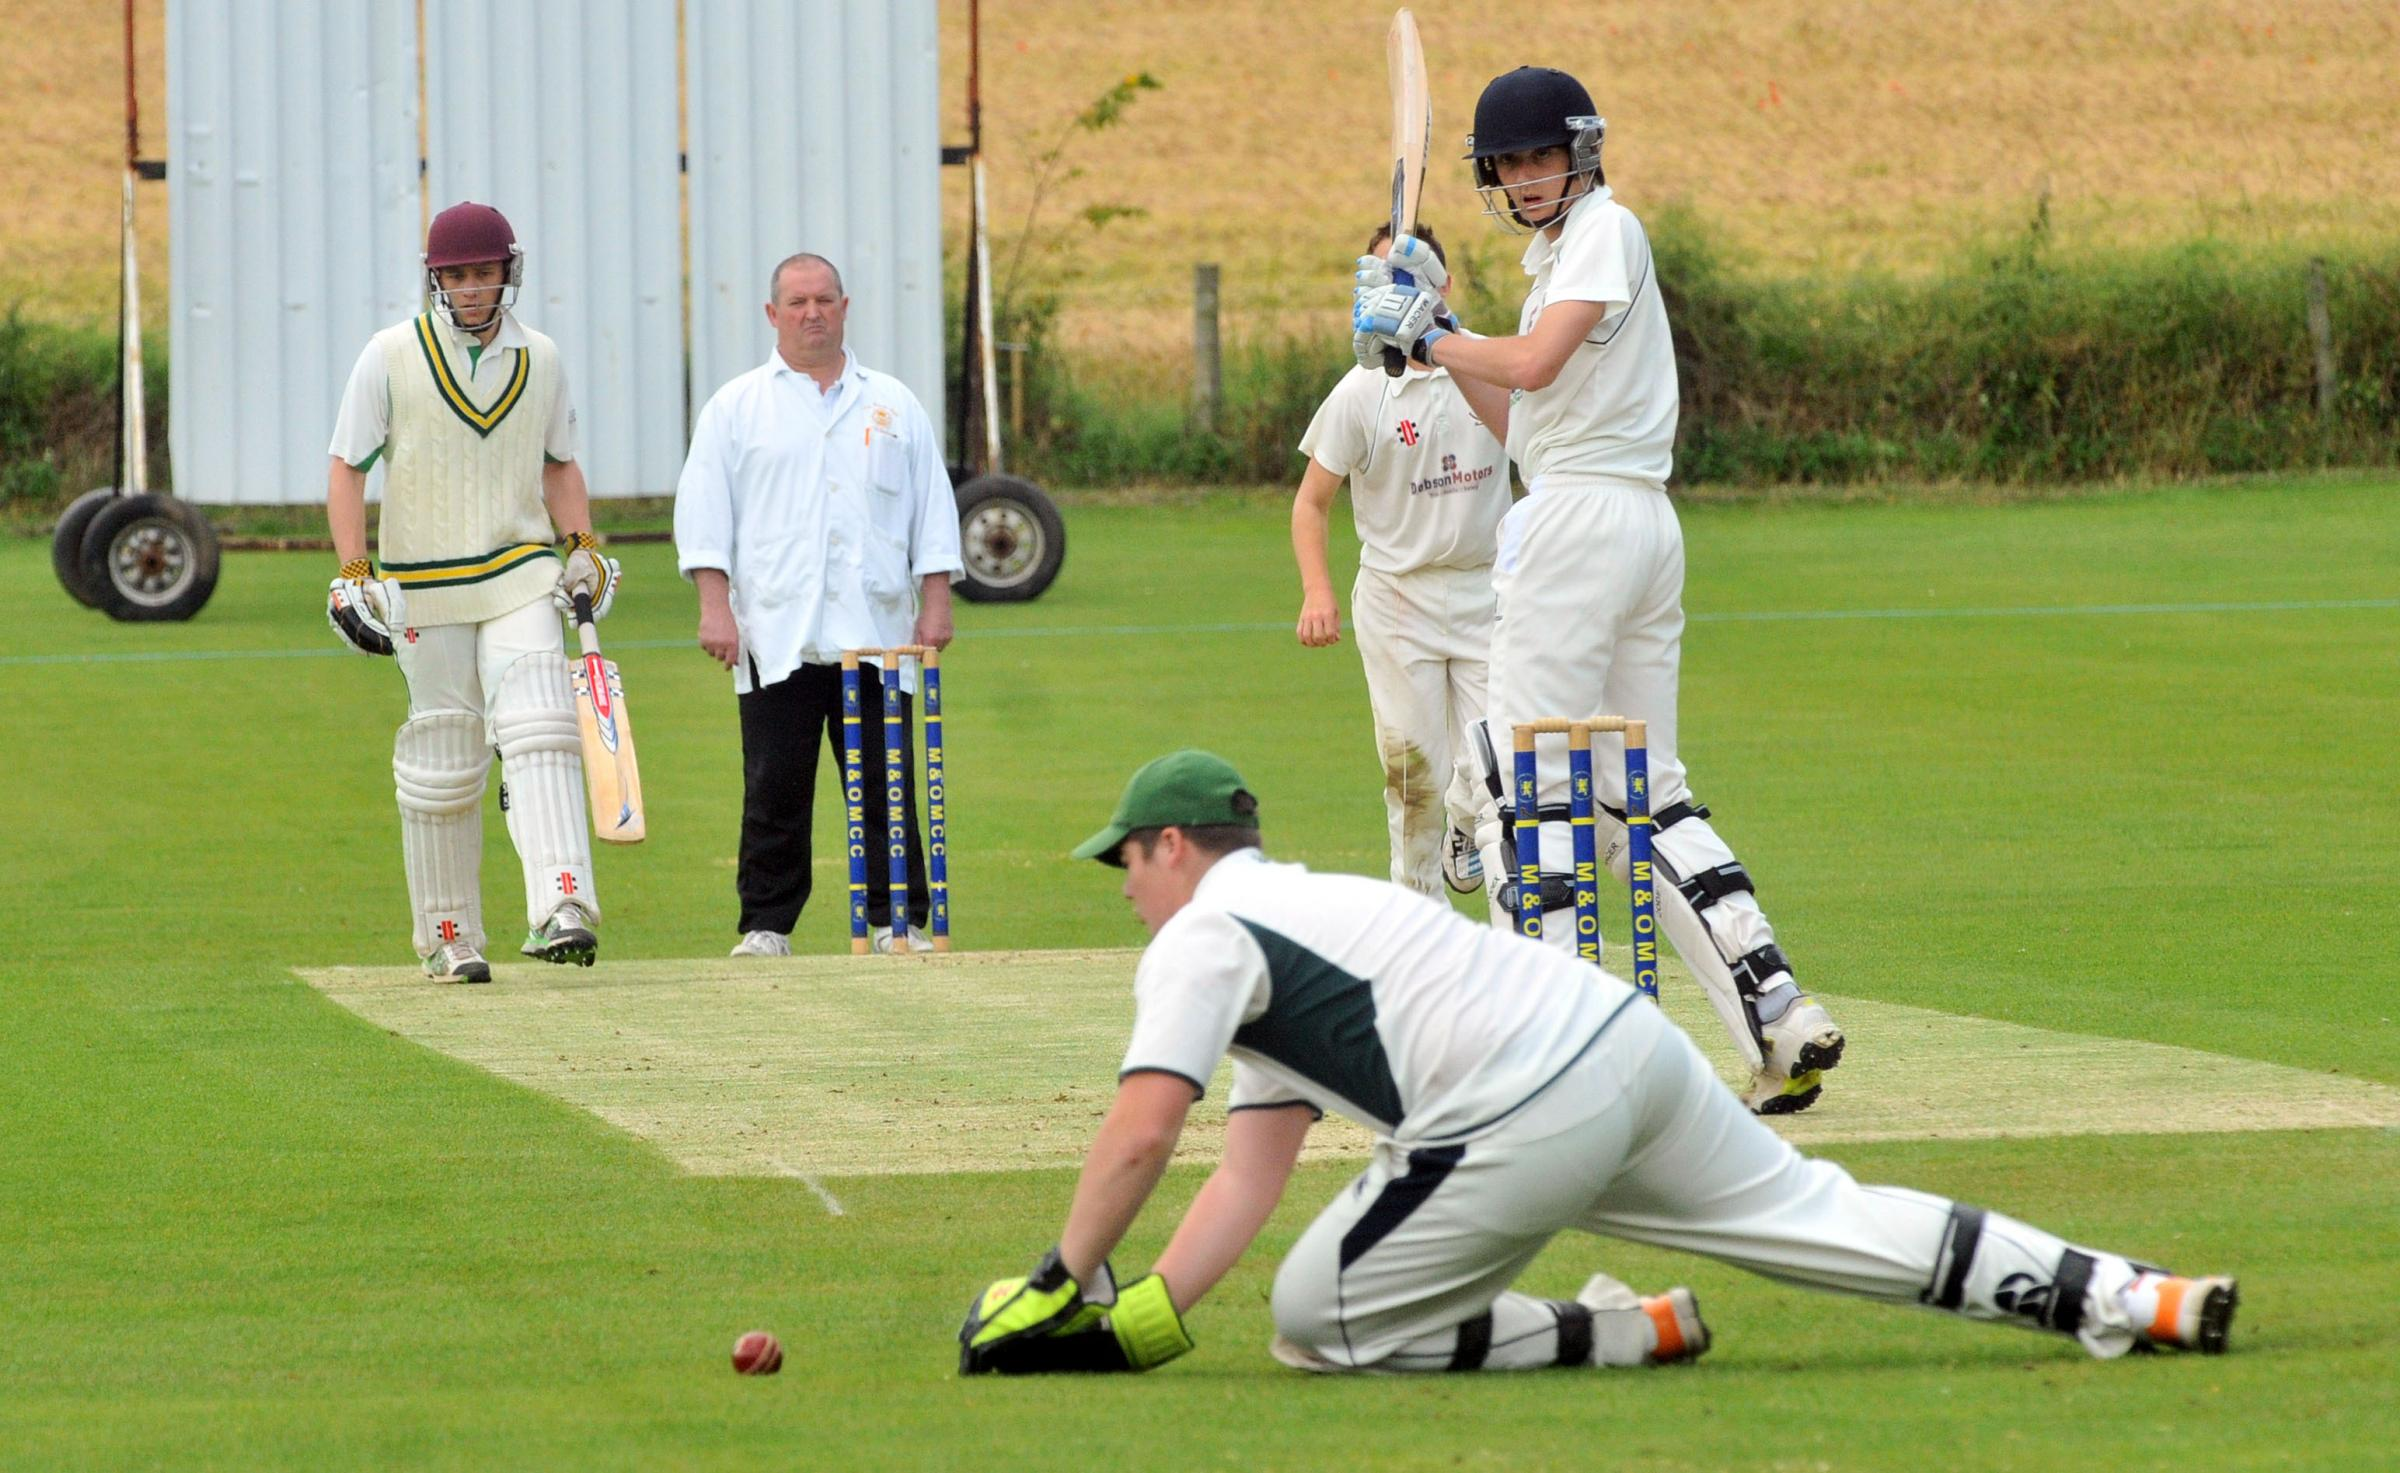 Senior Cricket League: Drax off the mark with Londesborough Park win